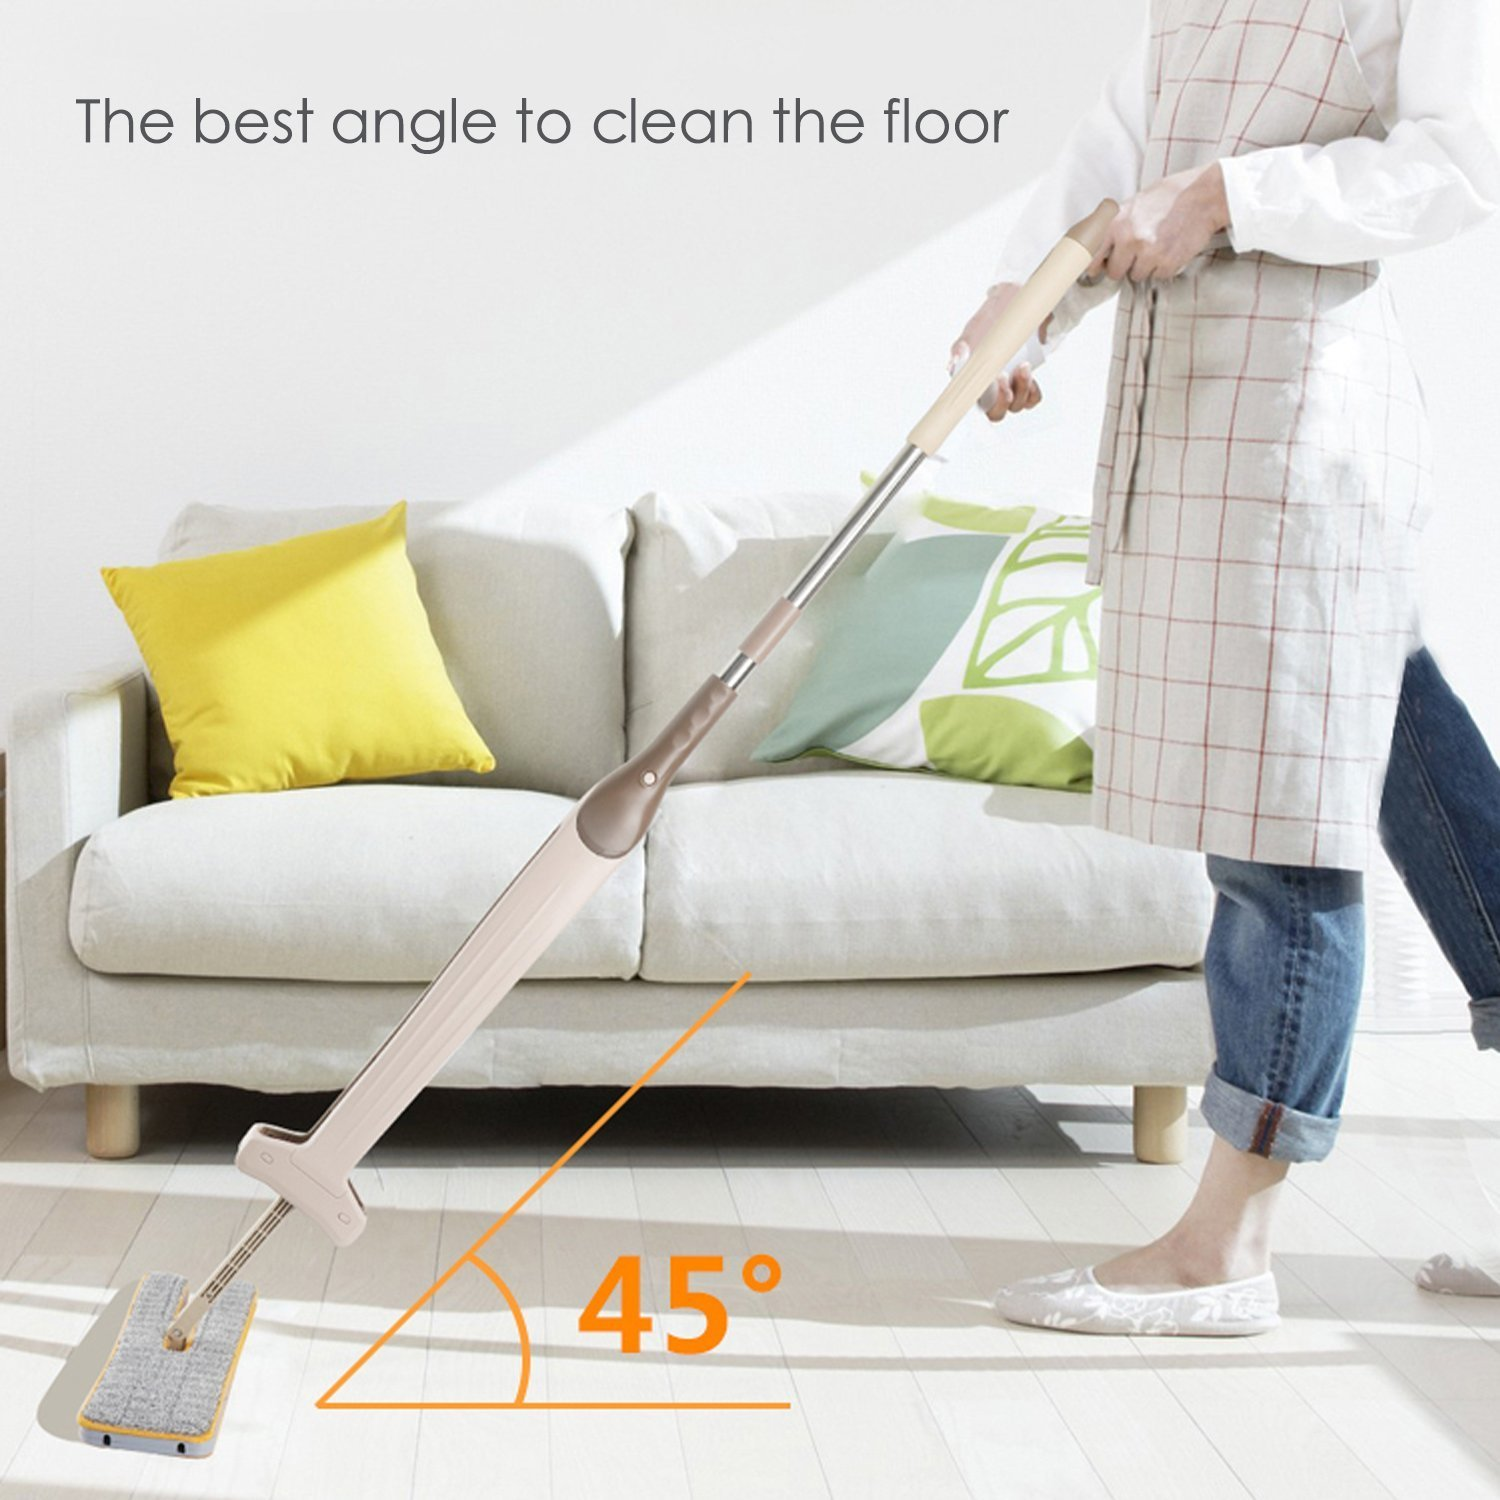 Hands-Free Double-sided Flat-panel Floor Cleaning Mop, Dry and Clean Wet Dual-use, Superfine Fiber, 360 Degree Rotation, No Dead Ends Clean, Convenient, For Indoor Floors, Glass, Windows and So On